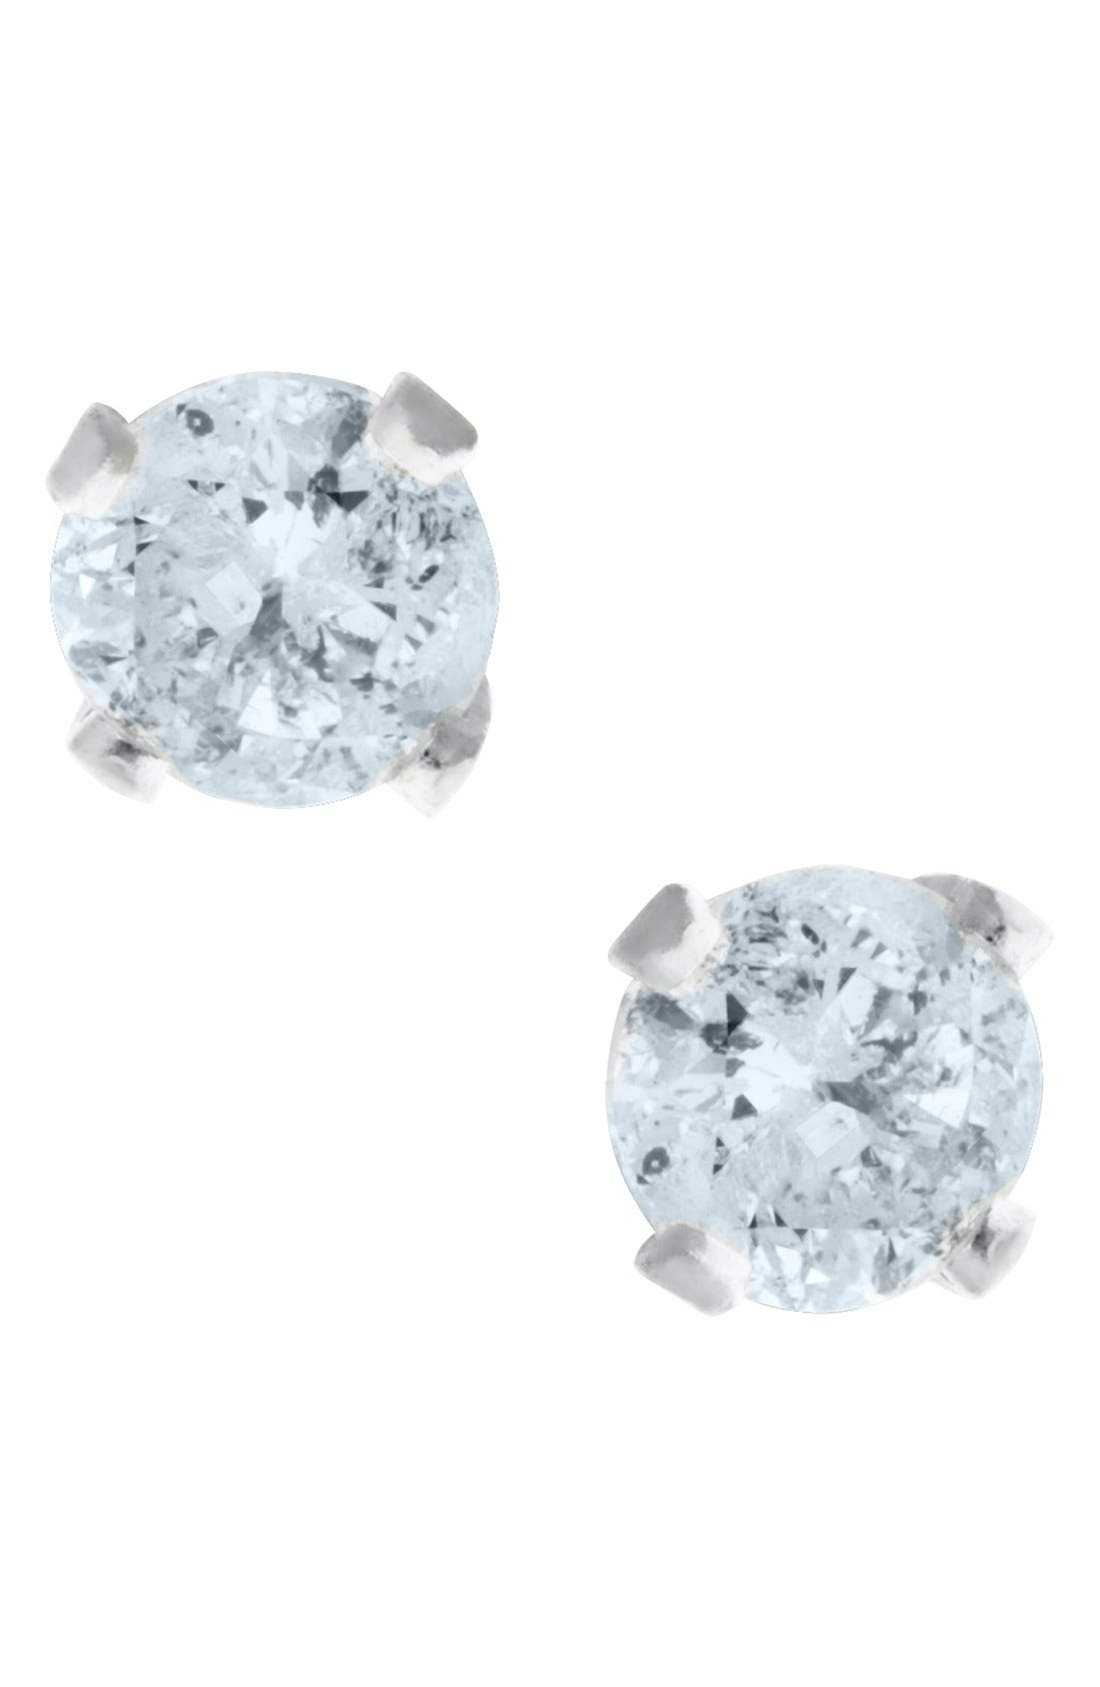 MIGNONETTE 14k White Gold & Diamond Stud Earrings